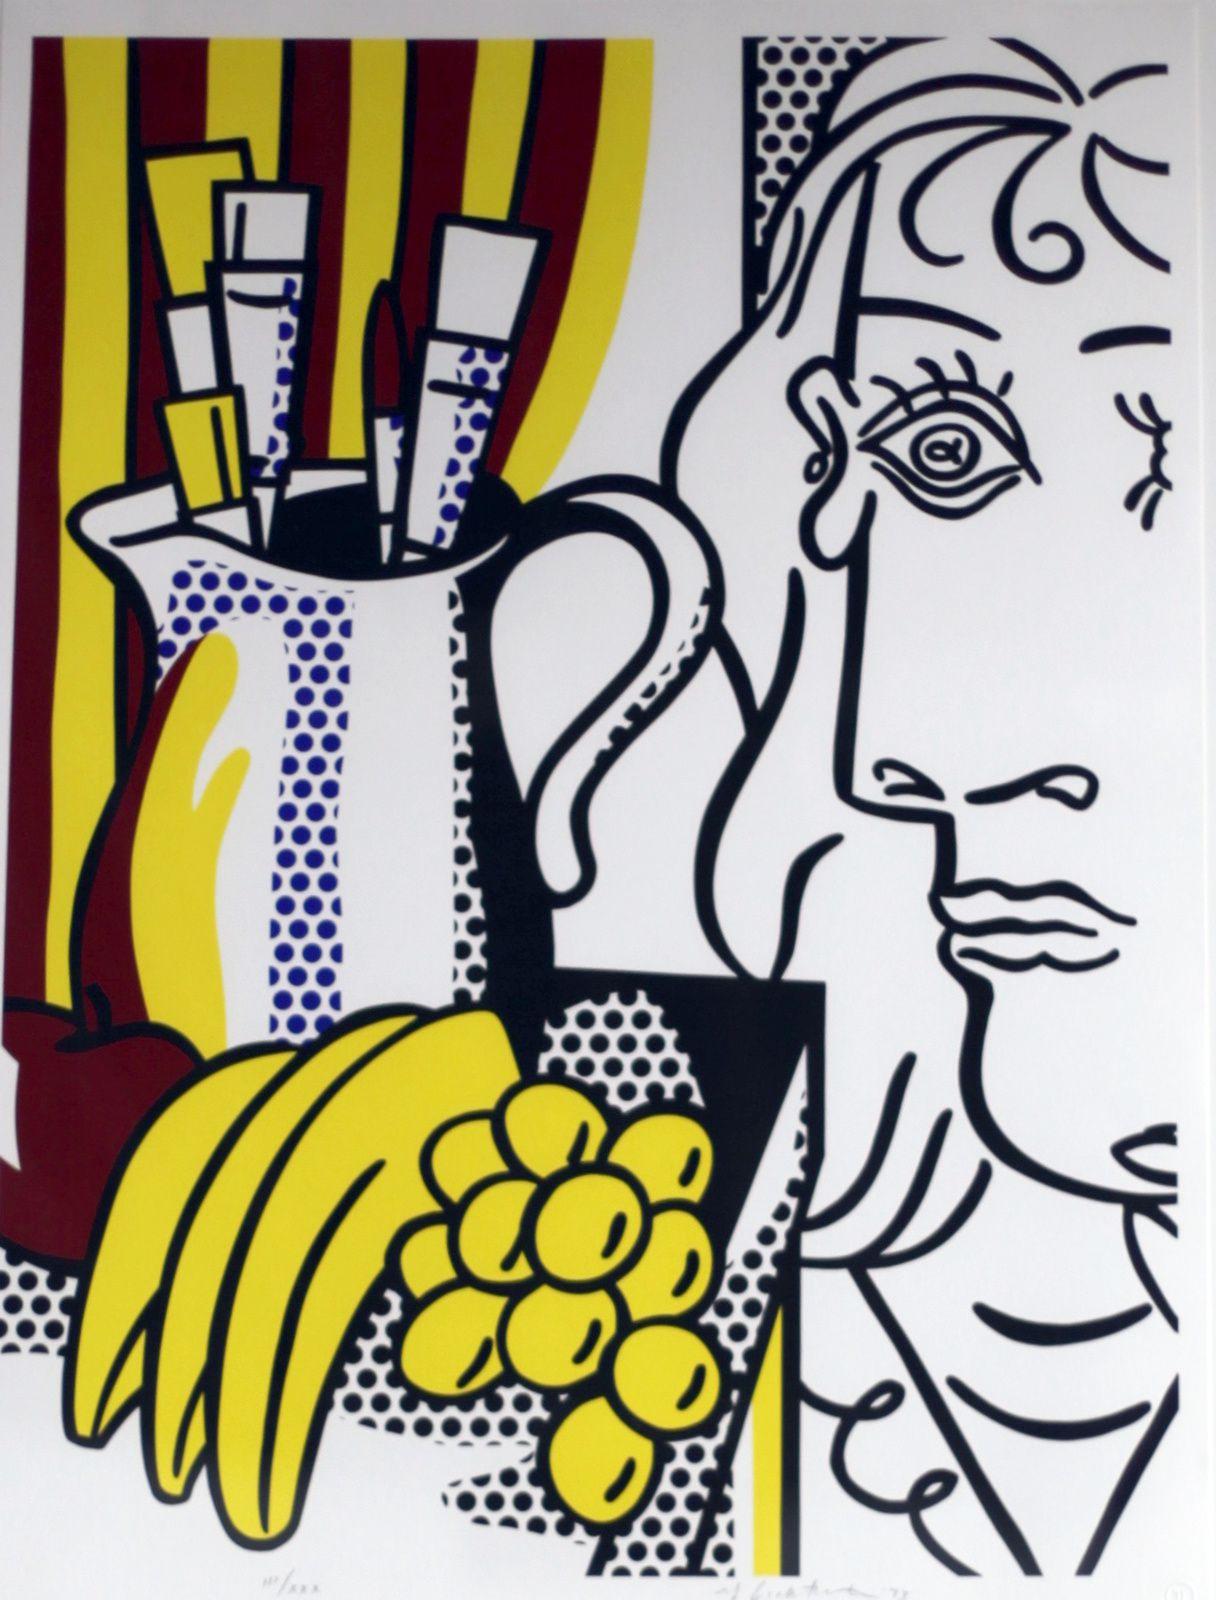 """Still life with Picasso"", 1973 de Roy Lichtenstein"